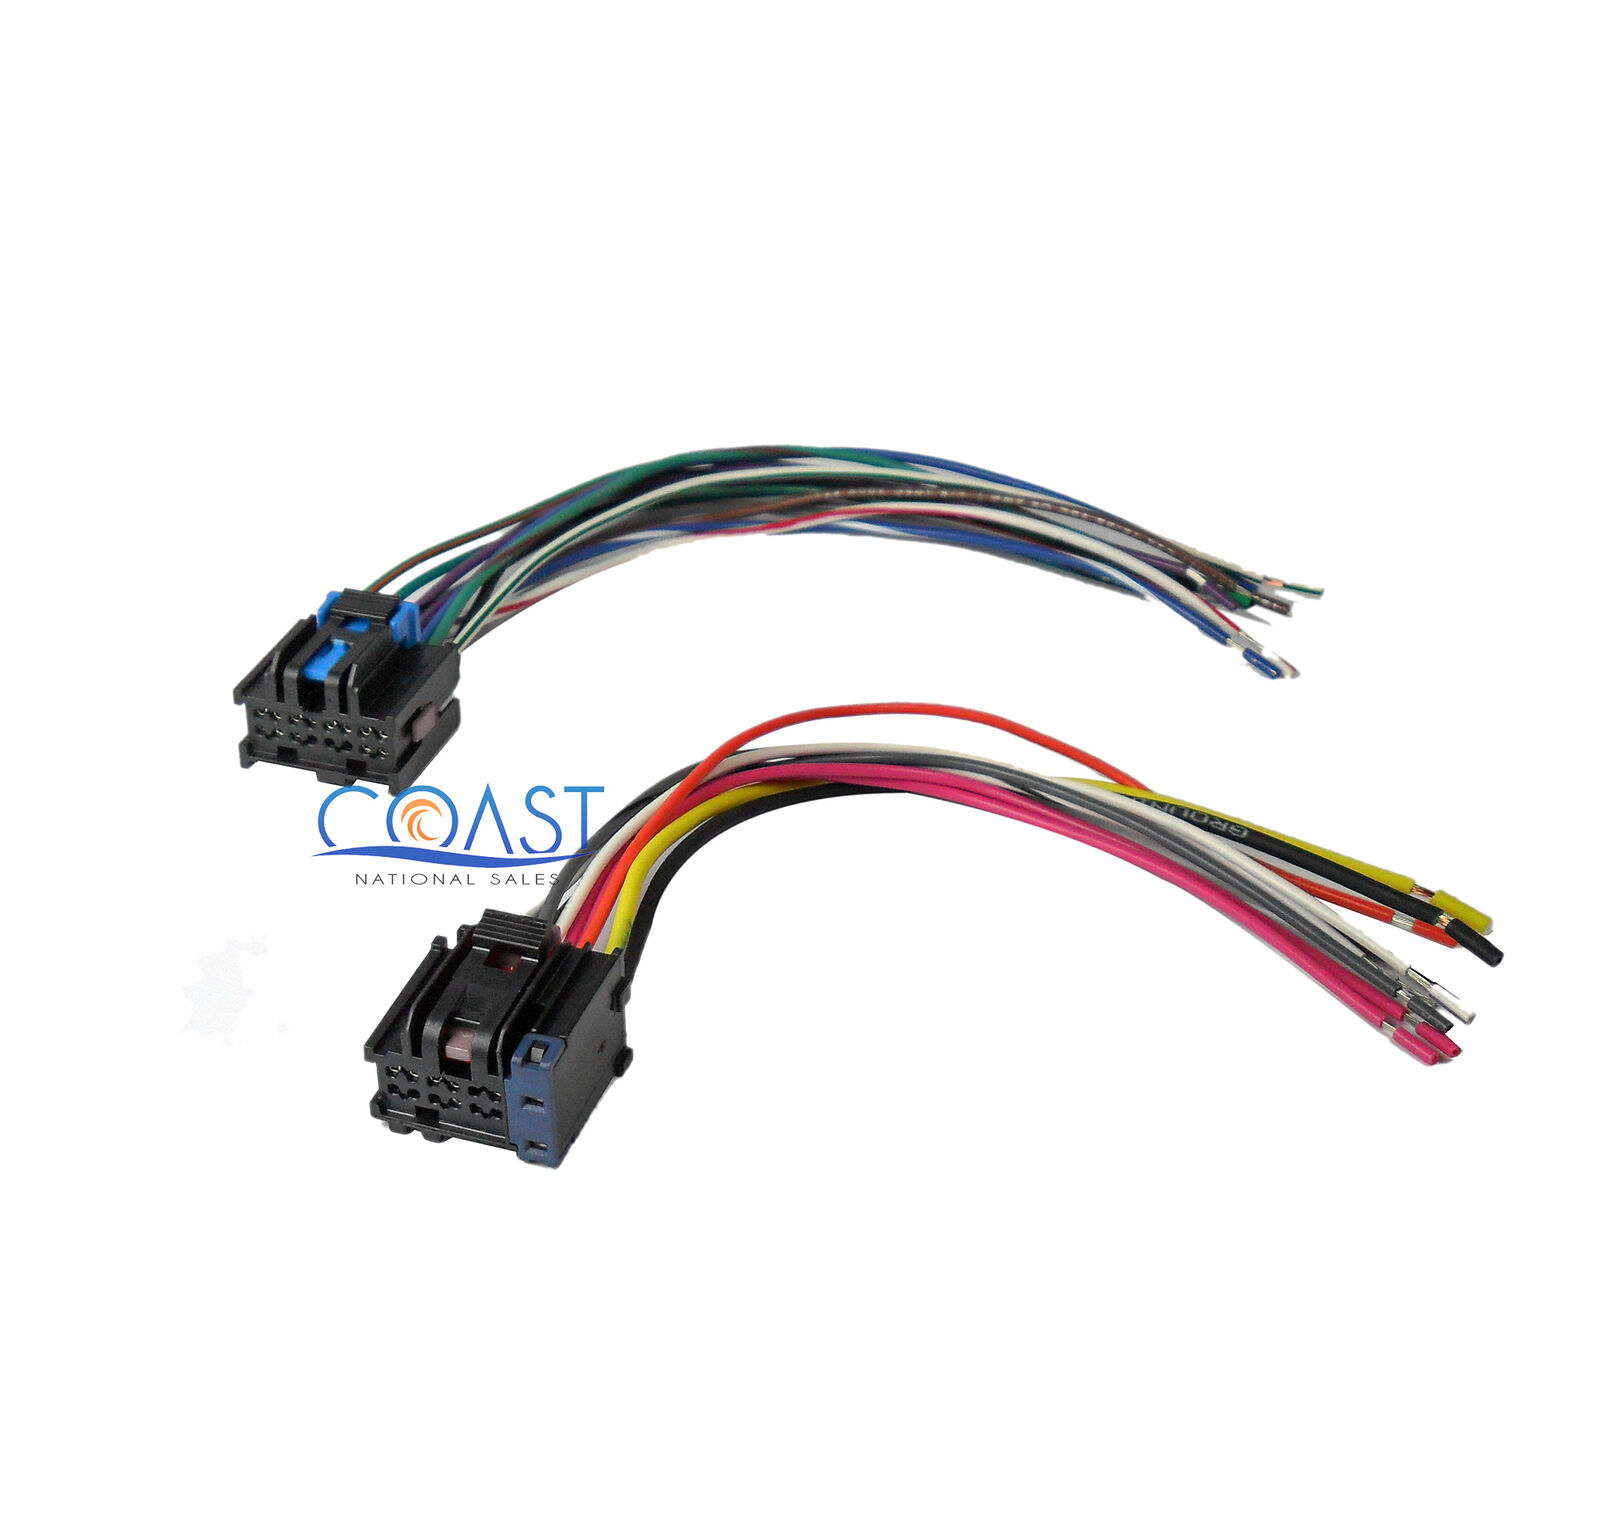 Pontiac Stereo Wiring Car Harness To Factory Radio For 2005 2010 Chevy 1 Of 1free Shipping